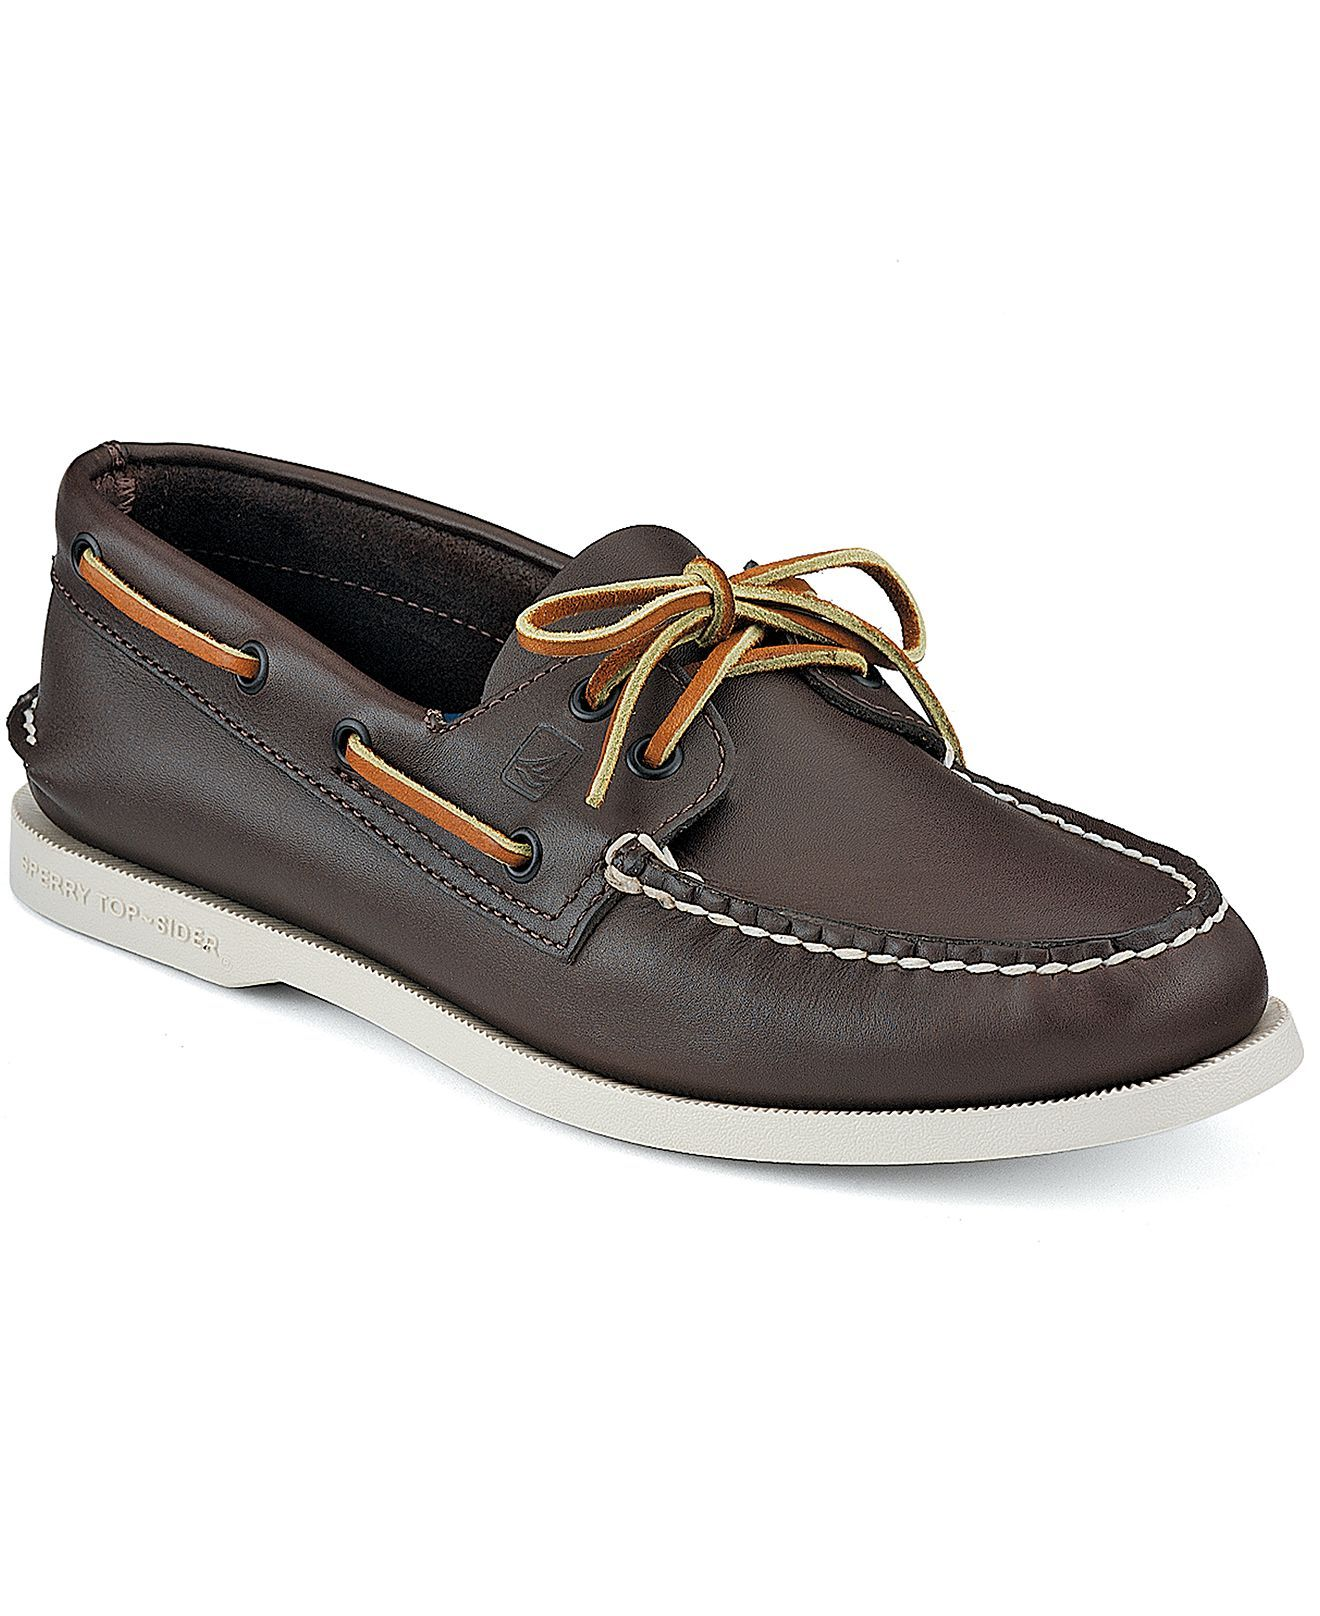 Boat shoes, Sperry top sider boat shoes